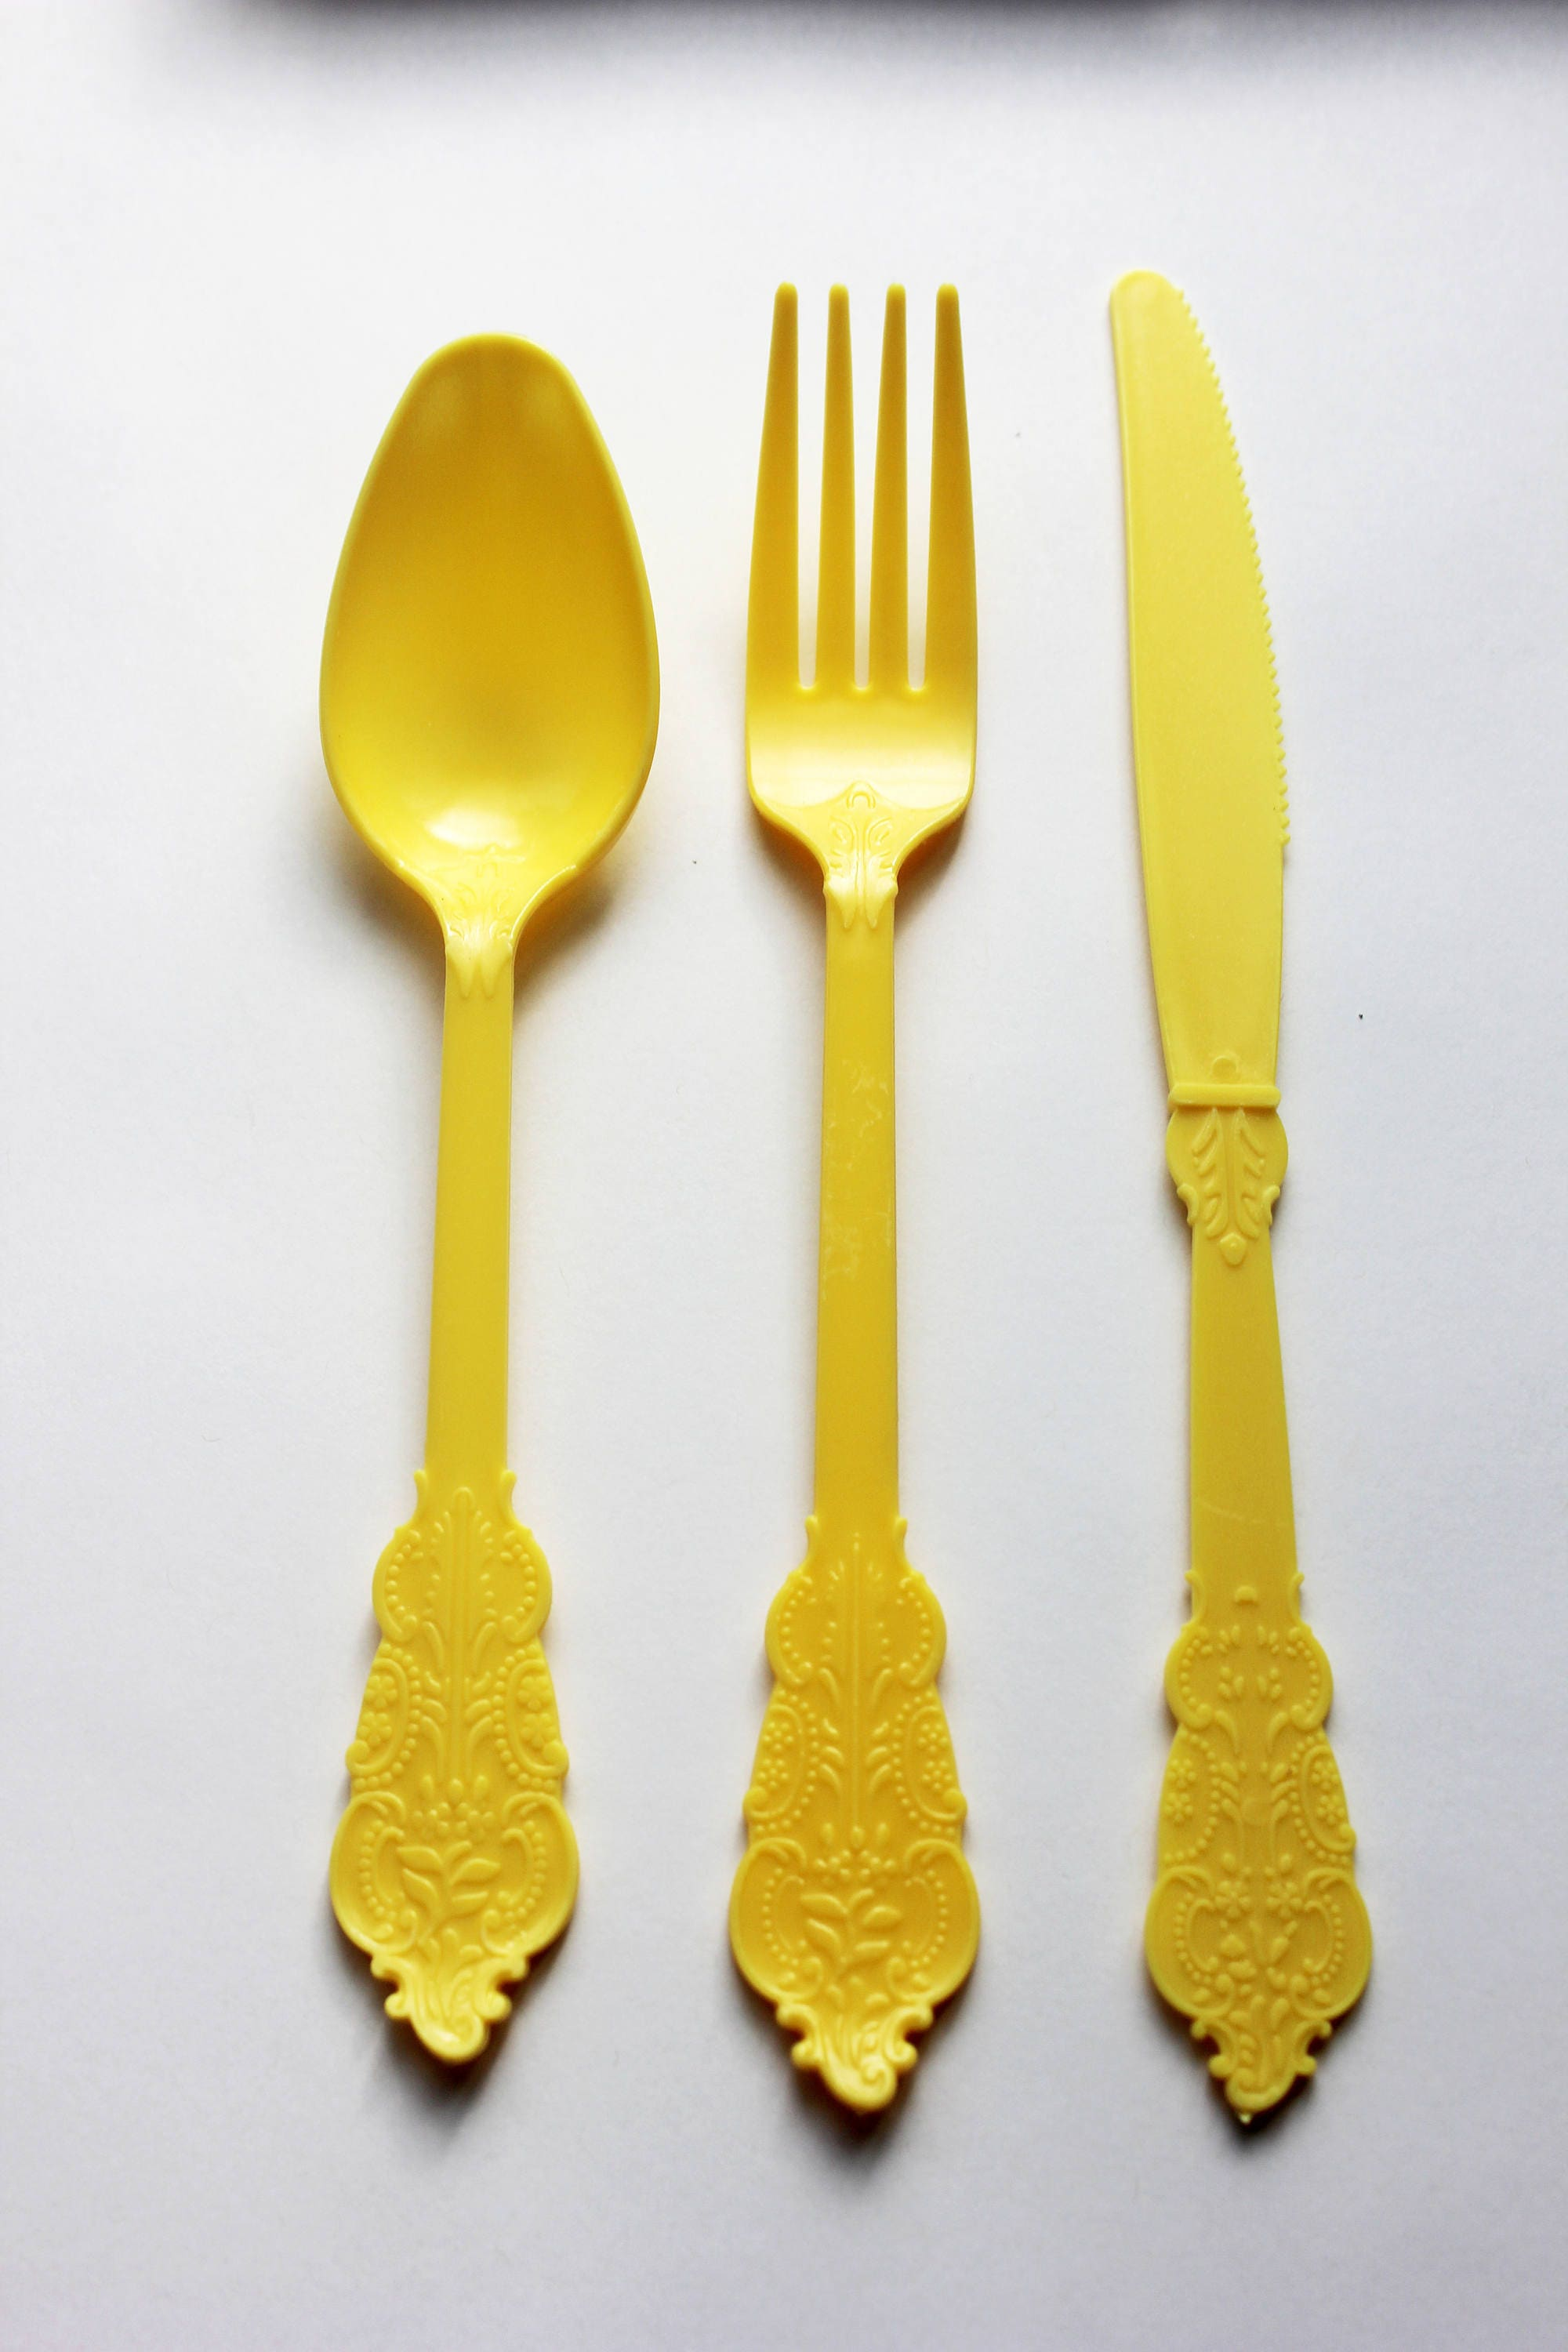 24 ASSORTED YELLOW Cutlery Plastic Forks Spoons Knives